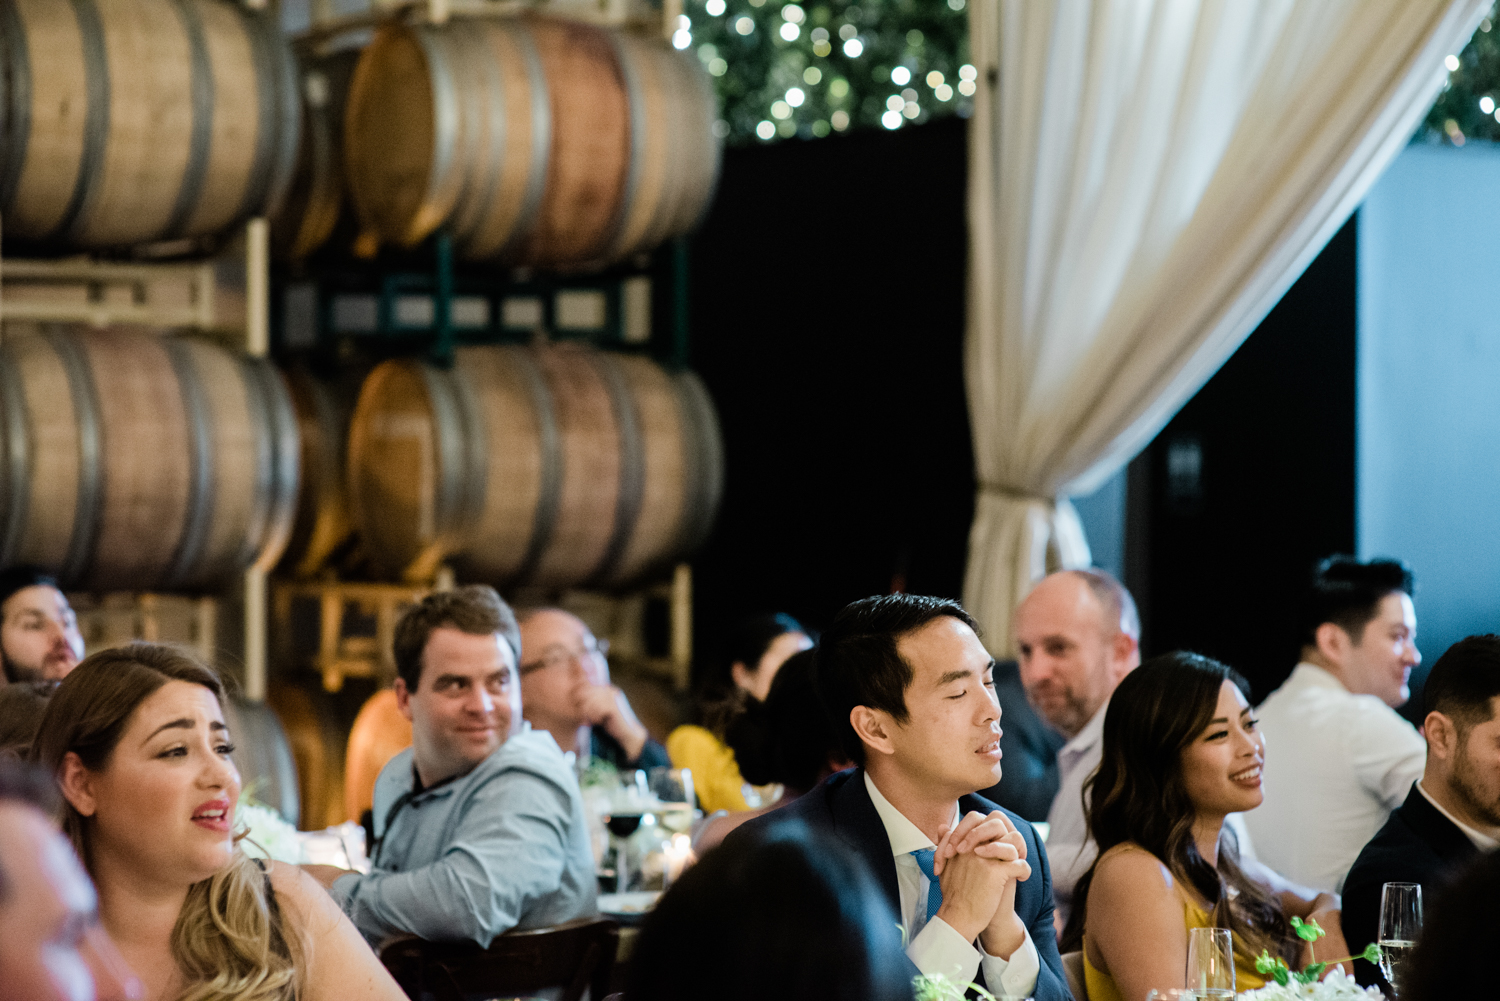 Potrero_Hill_Wine_Works_Wedding_ChristinaRichards_088.jpg